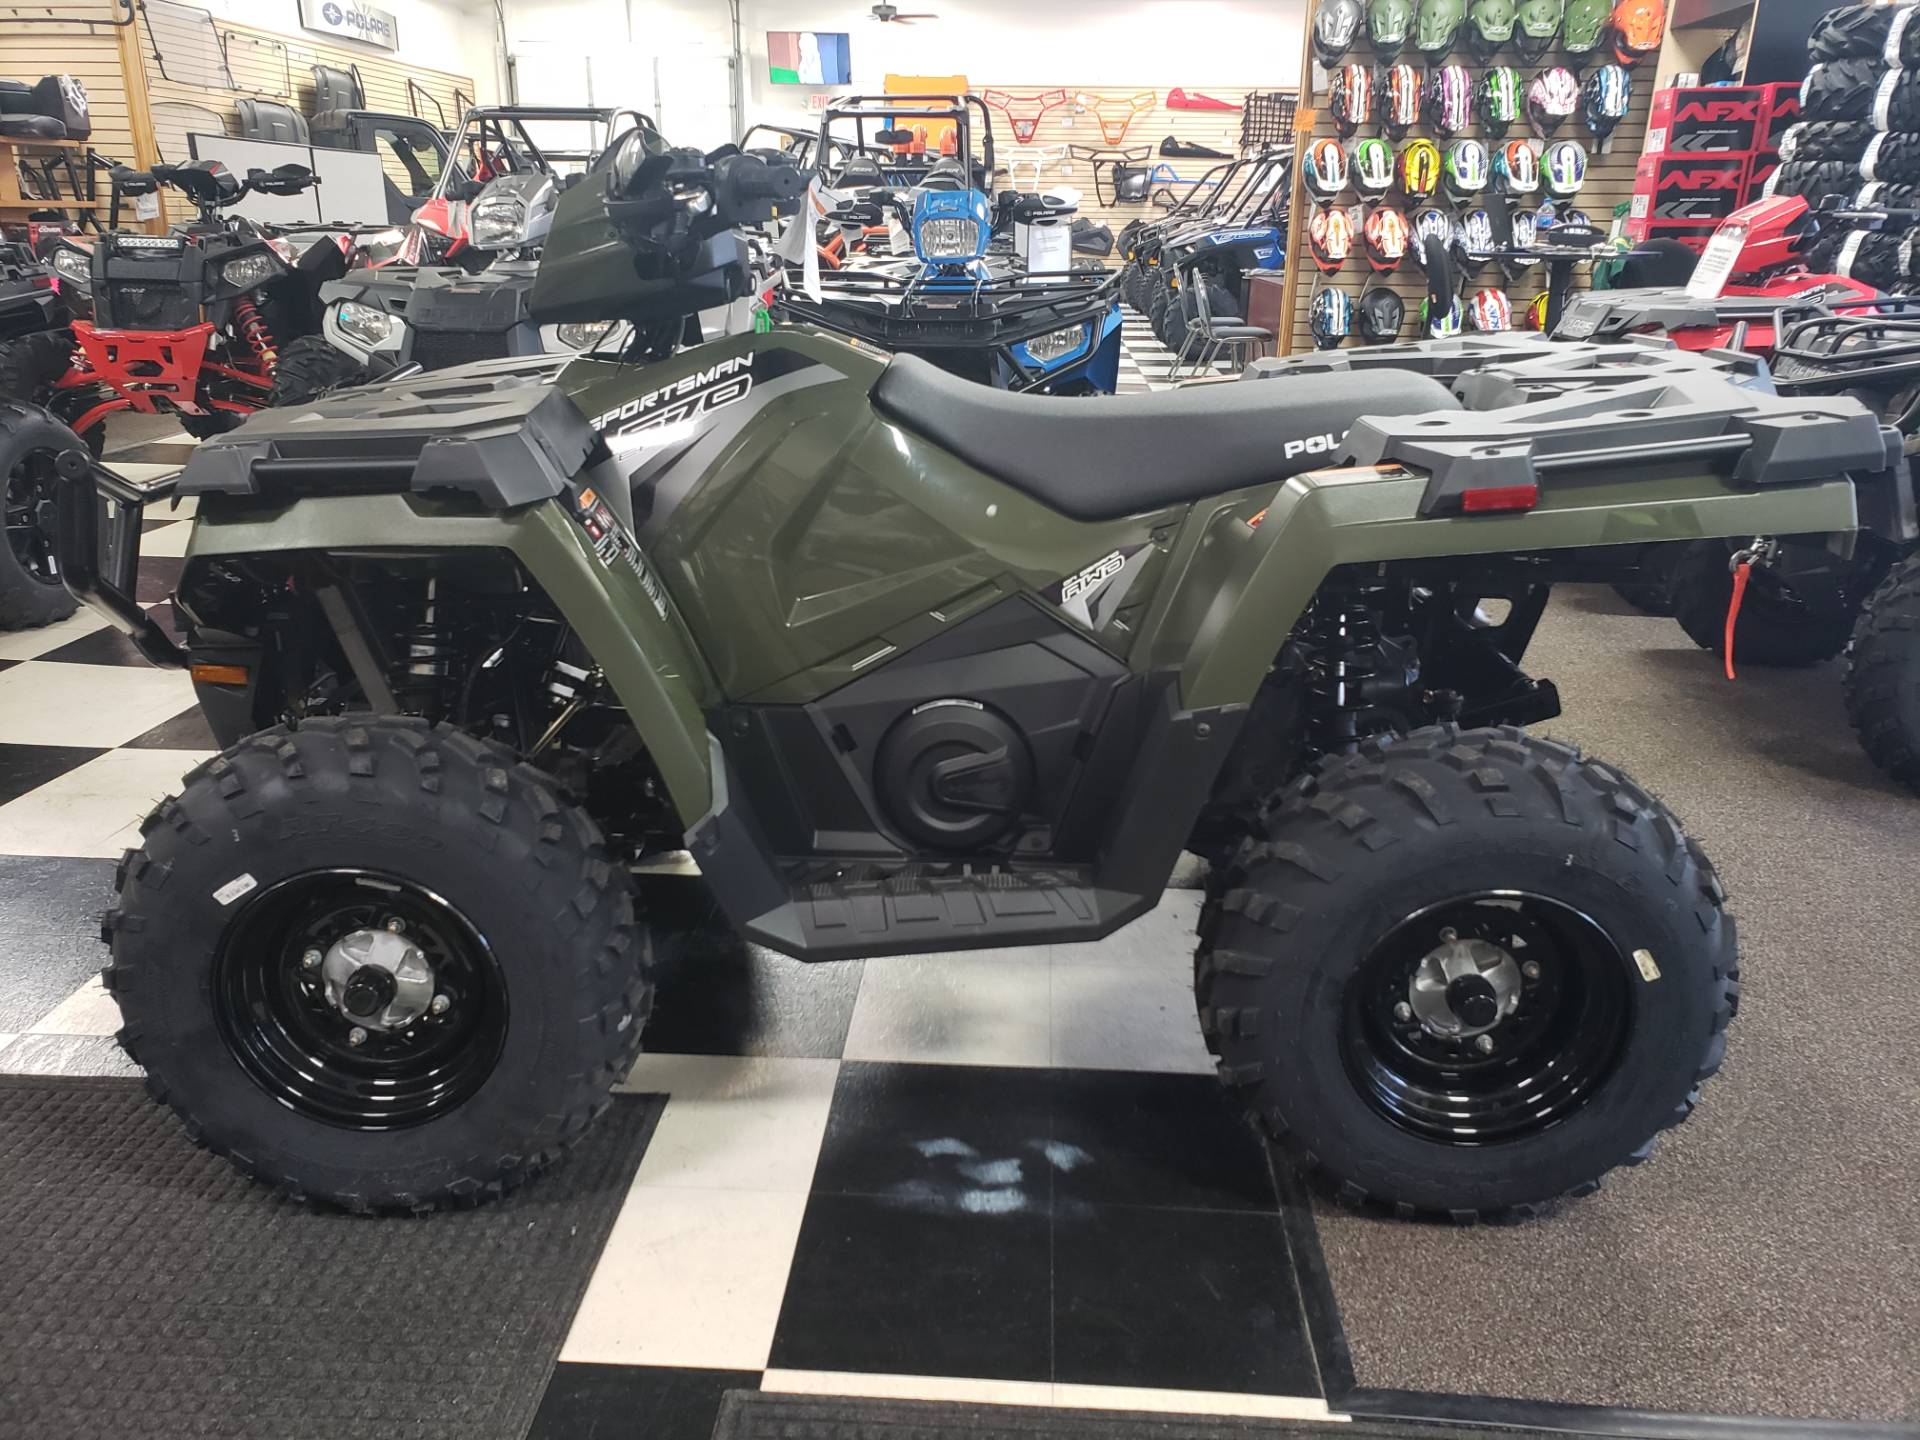 2020 Polaris Sportsman 570 in Beaver Falls, Pennsylvania - Photo 3